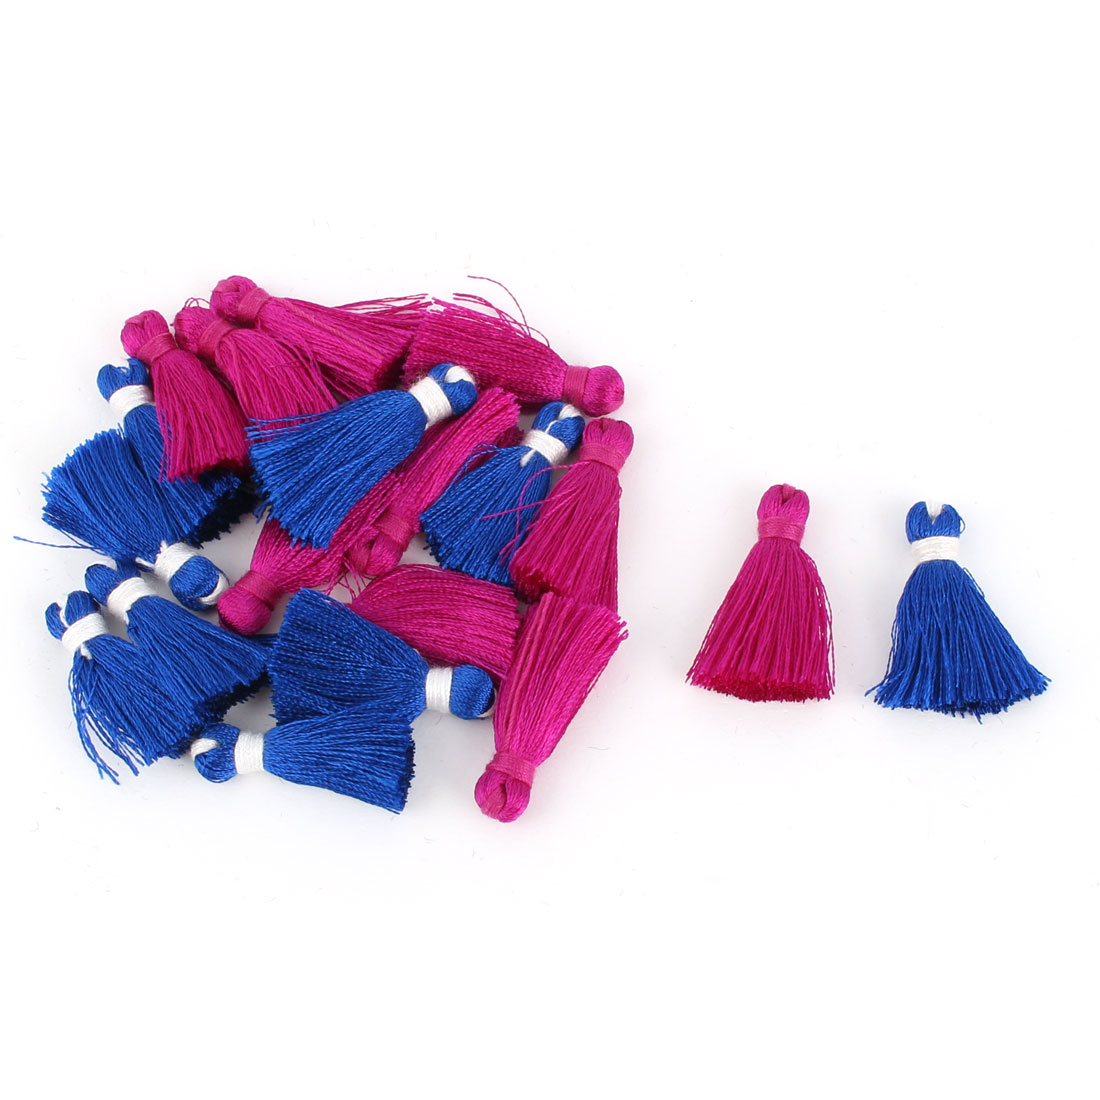 Household Polyester Decoration Handcraft Jewelry Tassel Cord Fuchsia Blue 20 PCS